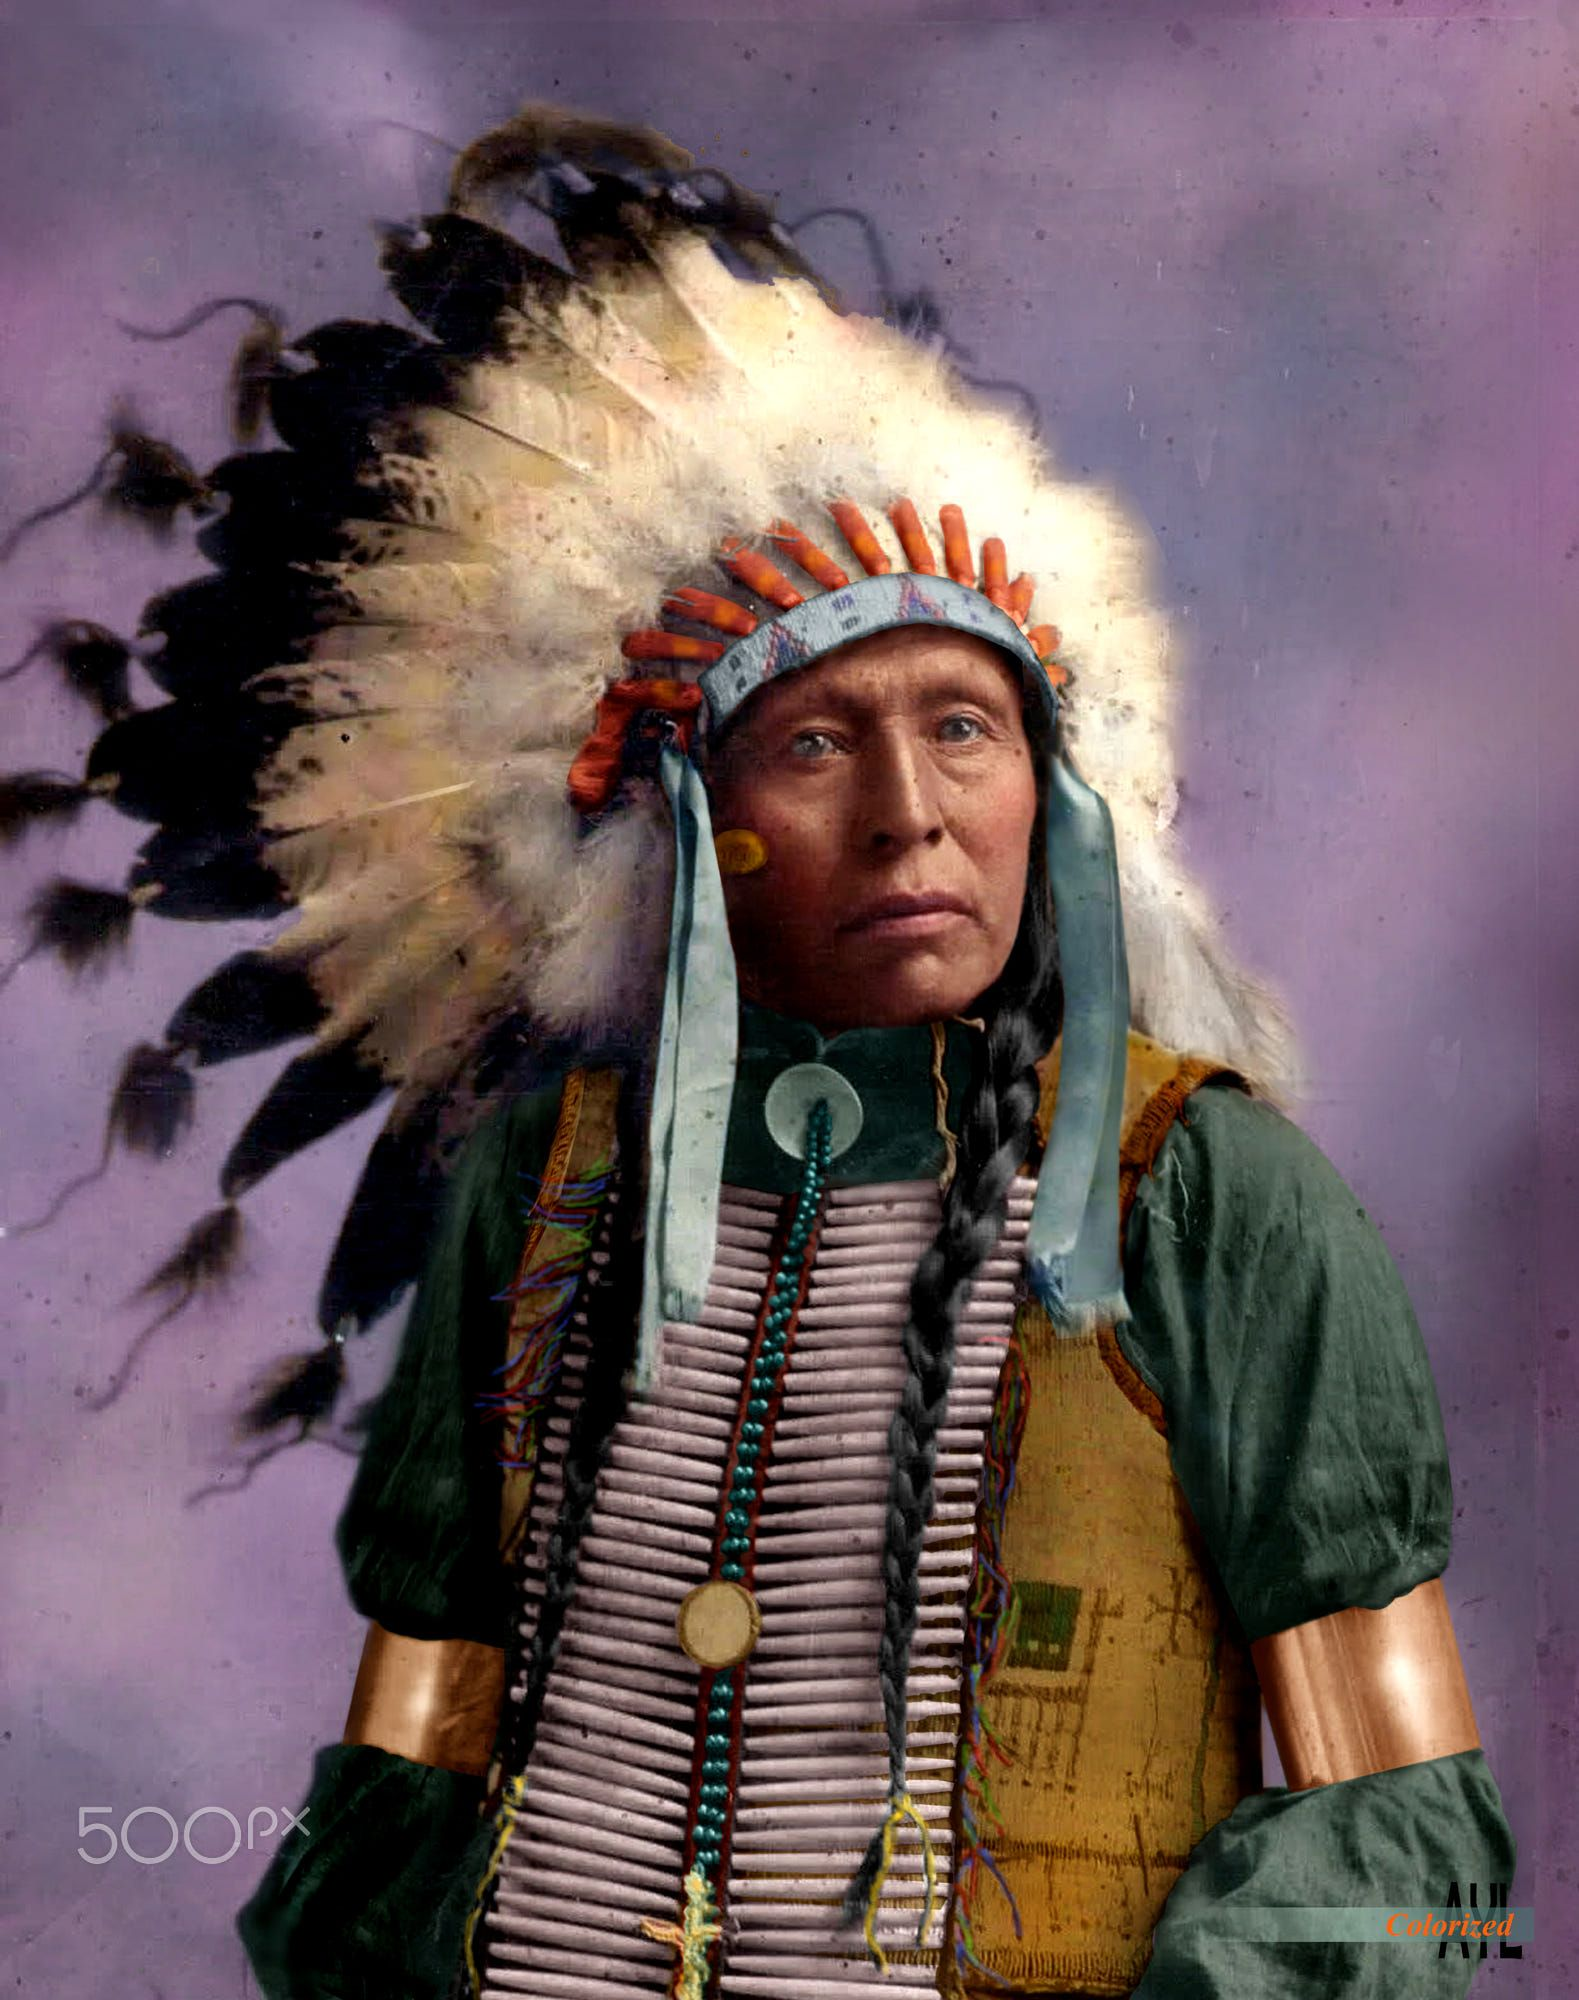 Colorized A Vintage Photo Of A Native American Indian